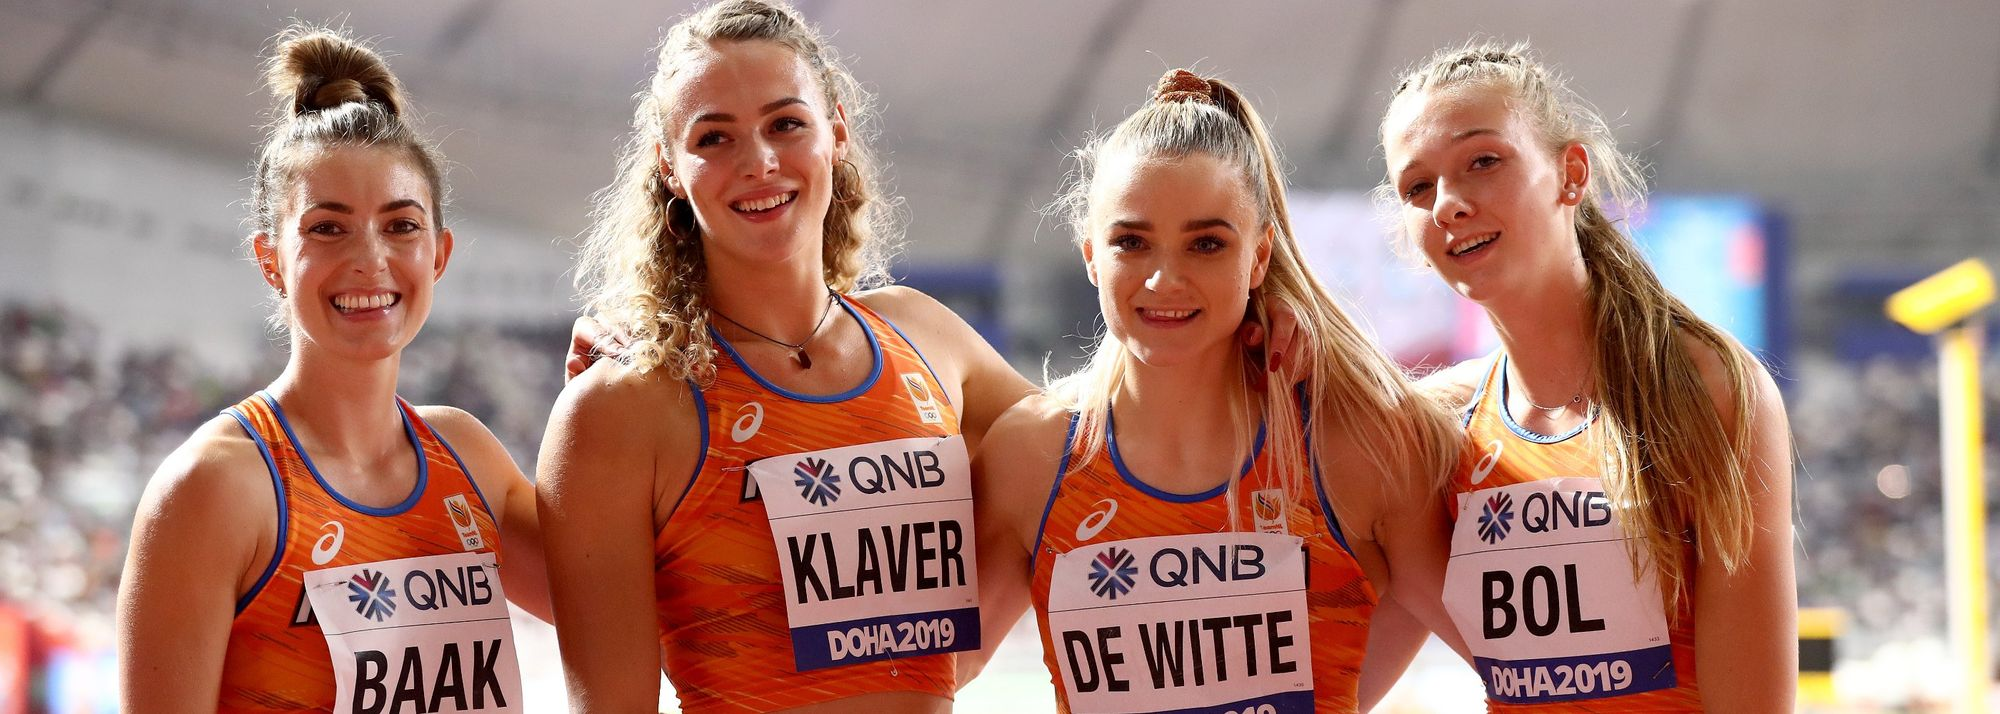 To best describe the close friendship between training partners and occasional on track rivals Lieke Klaver and Femke Bol, perhaps the Dutch word of 'gunnen' (not begrudge) might be most apt.